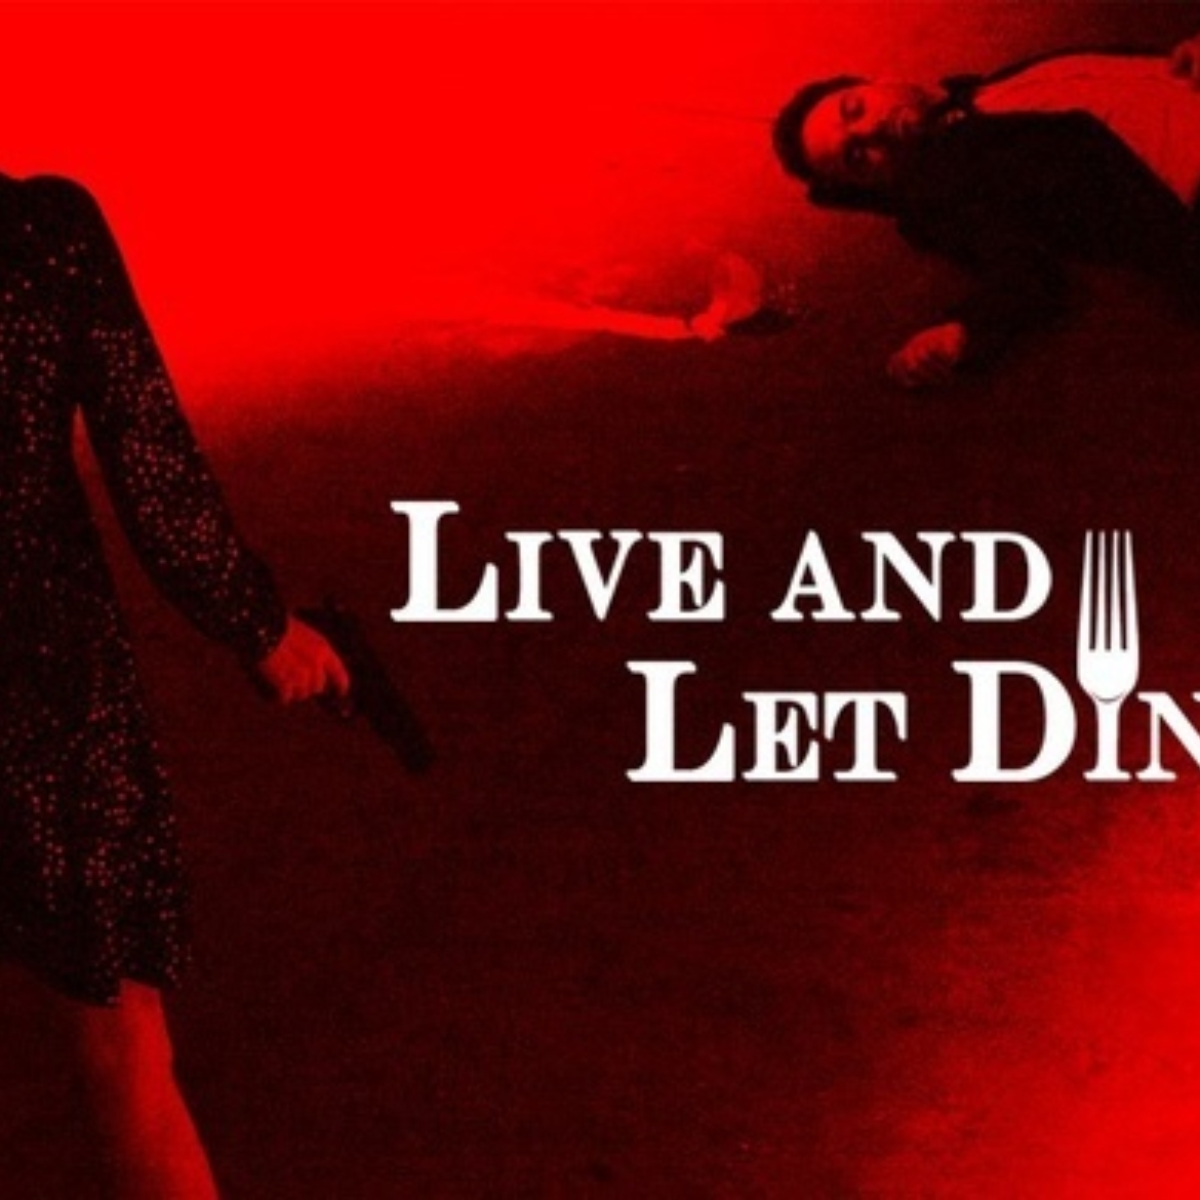 Live and Let Dine Images